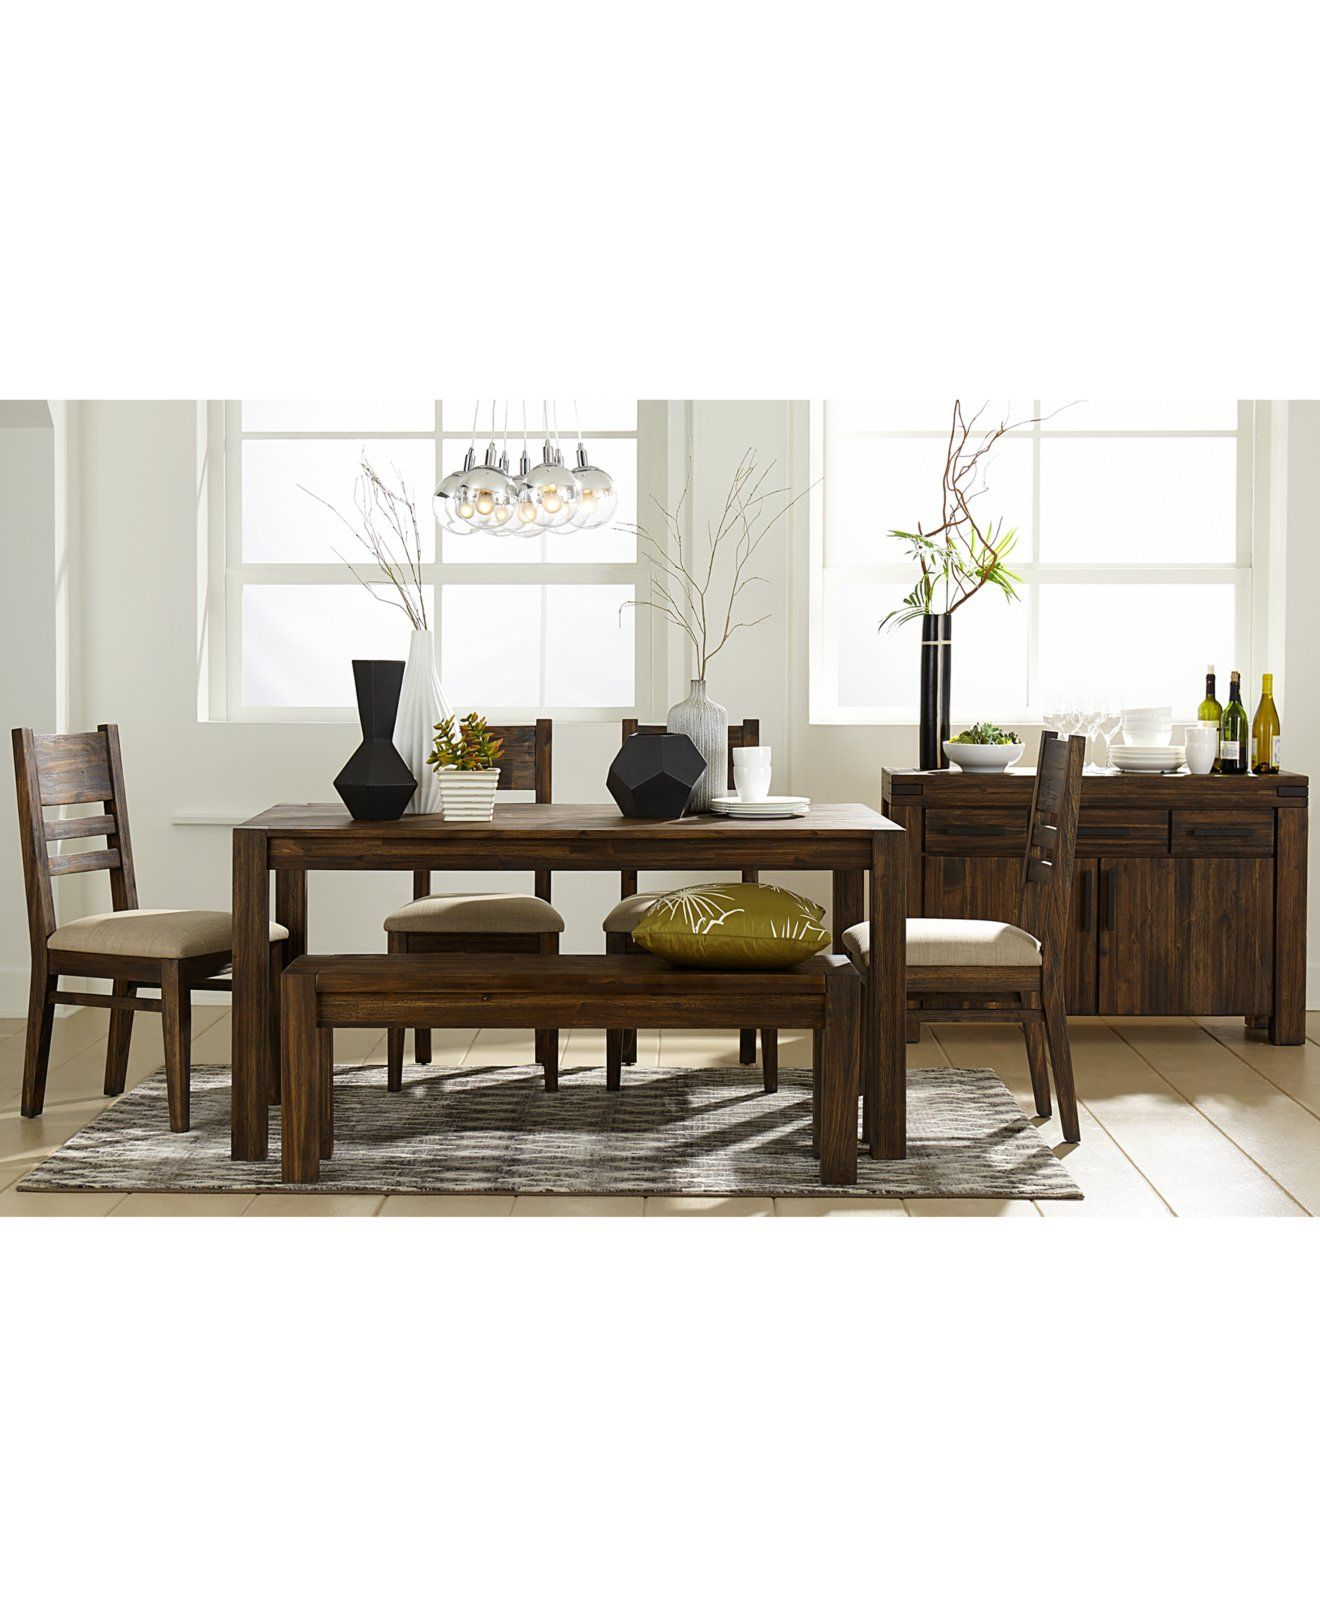 Avondale Dining Room Furniture Collection Created For Macy's Alluring Macys Dining Room Chairs Inspiration